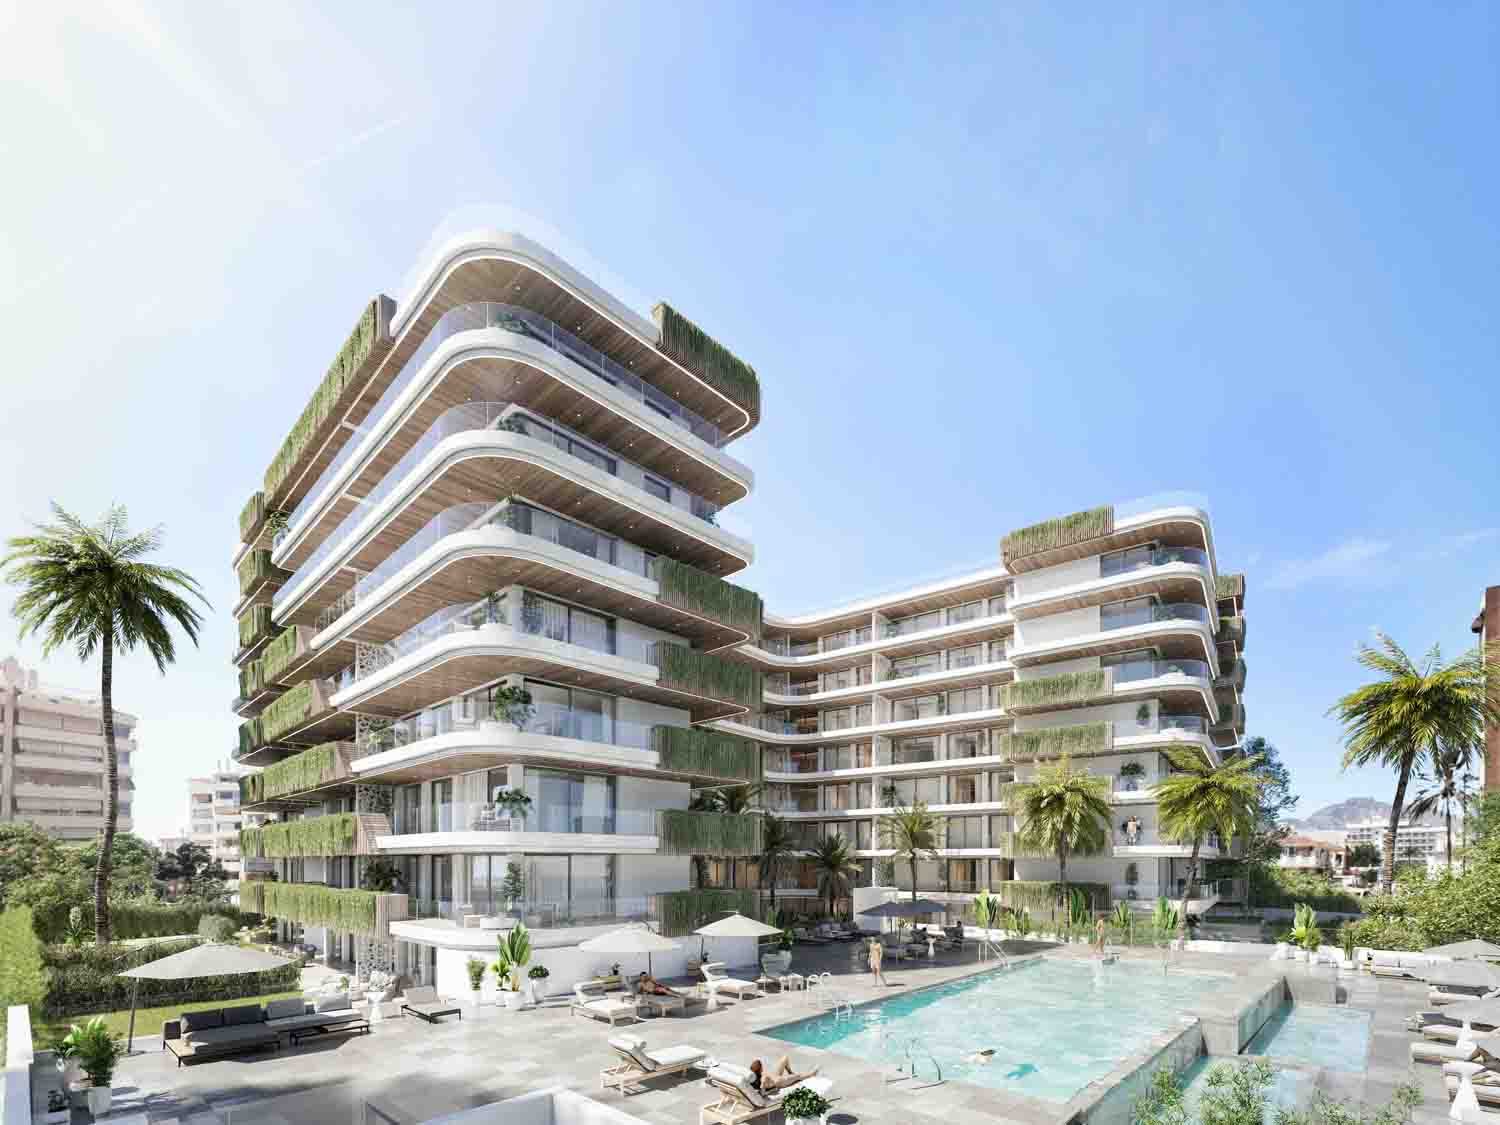 New luxury apartments in Fuengirola